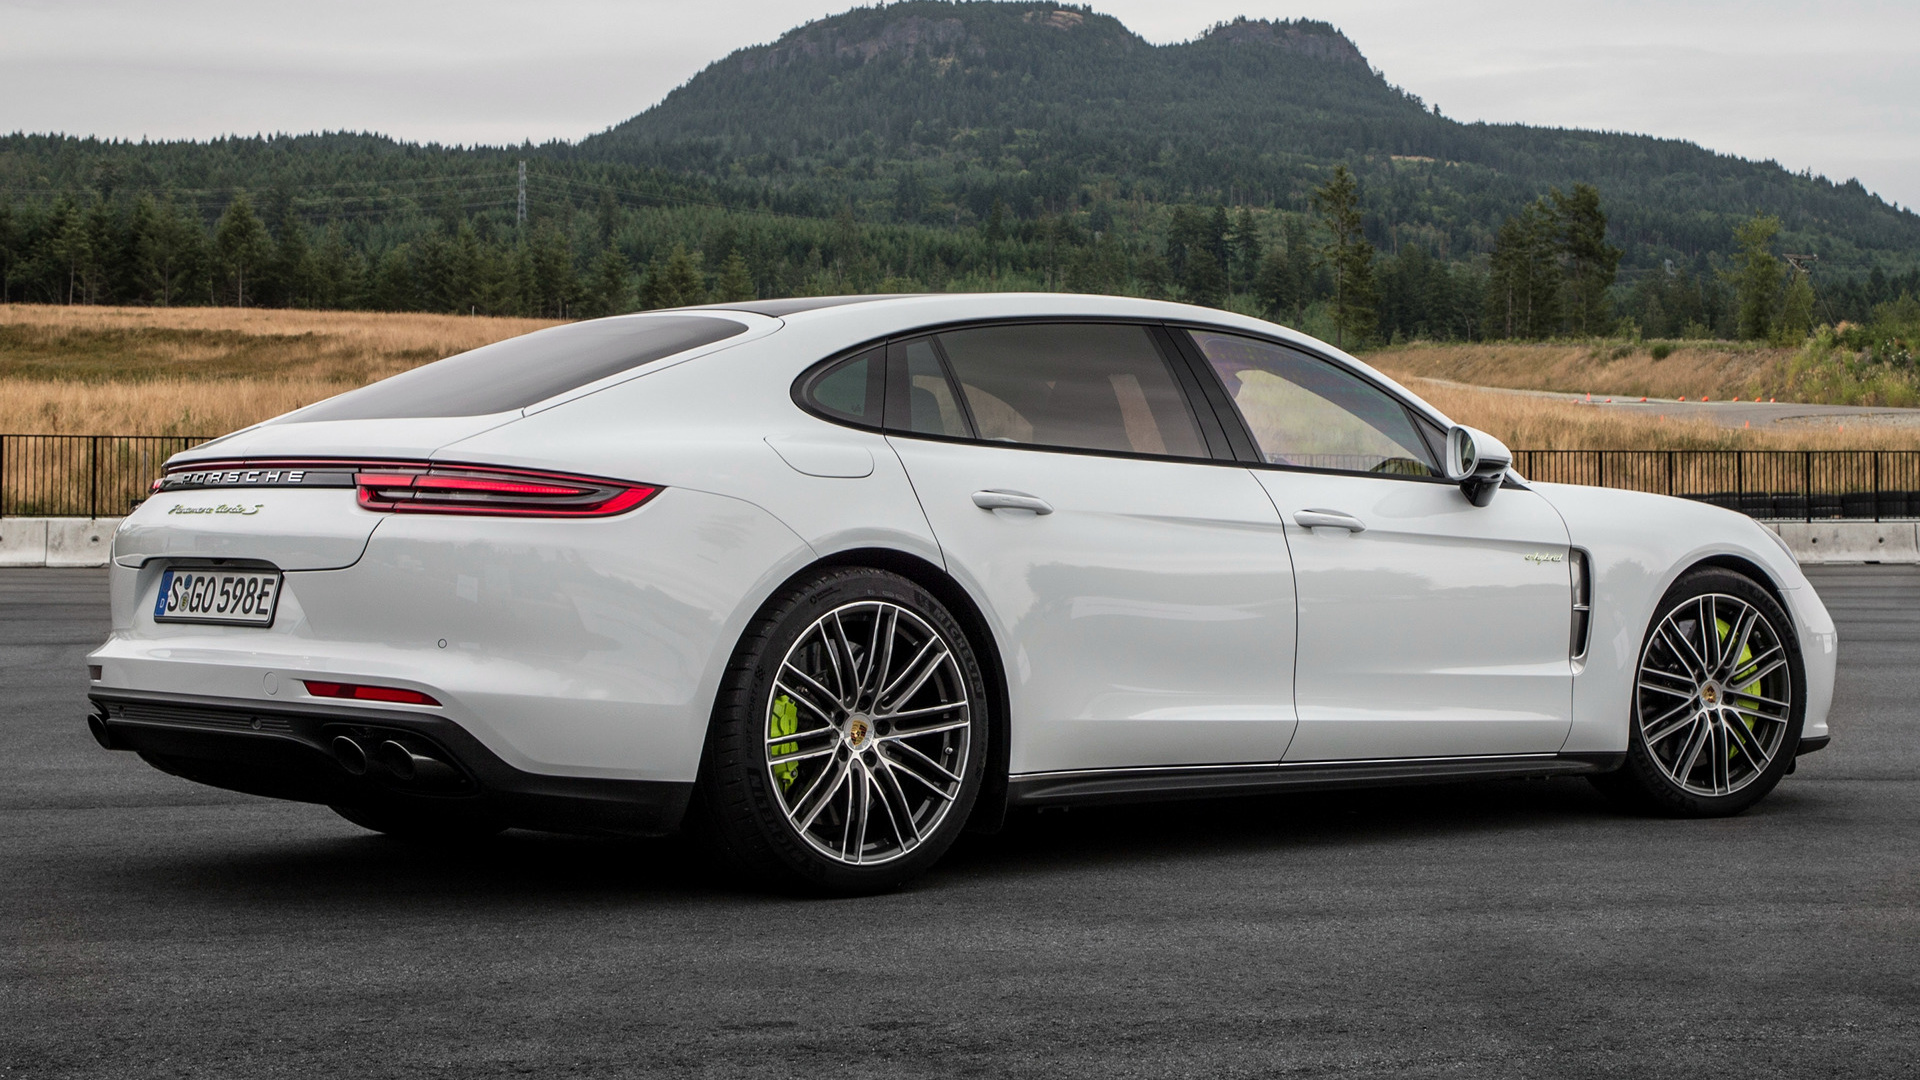 Porsche Panamera Turbo Sedan White Car Wallpapers ID884442